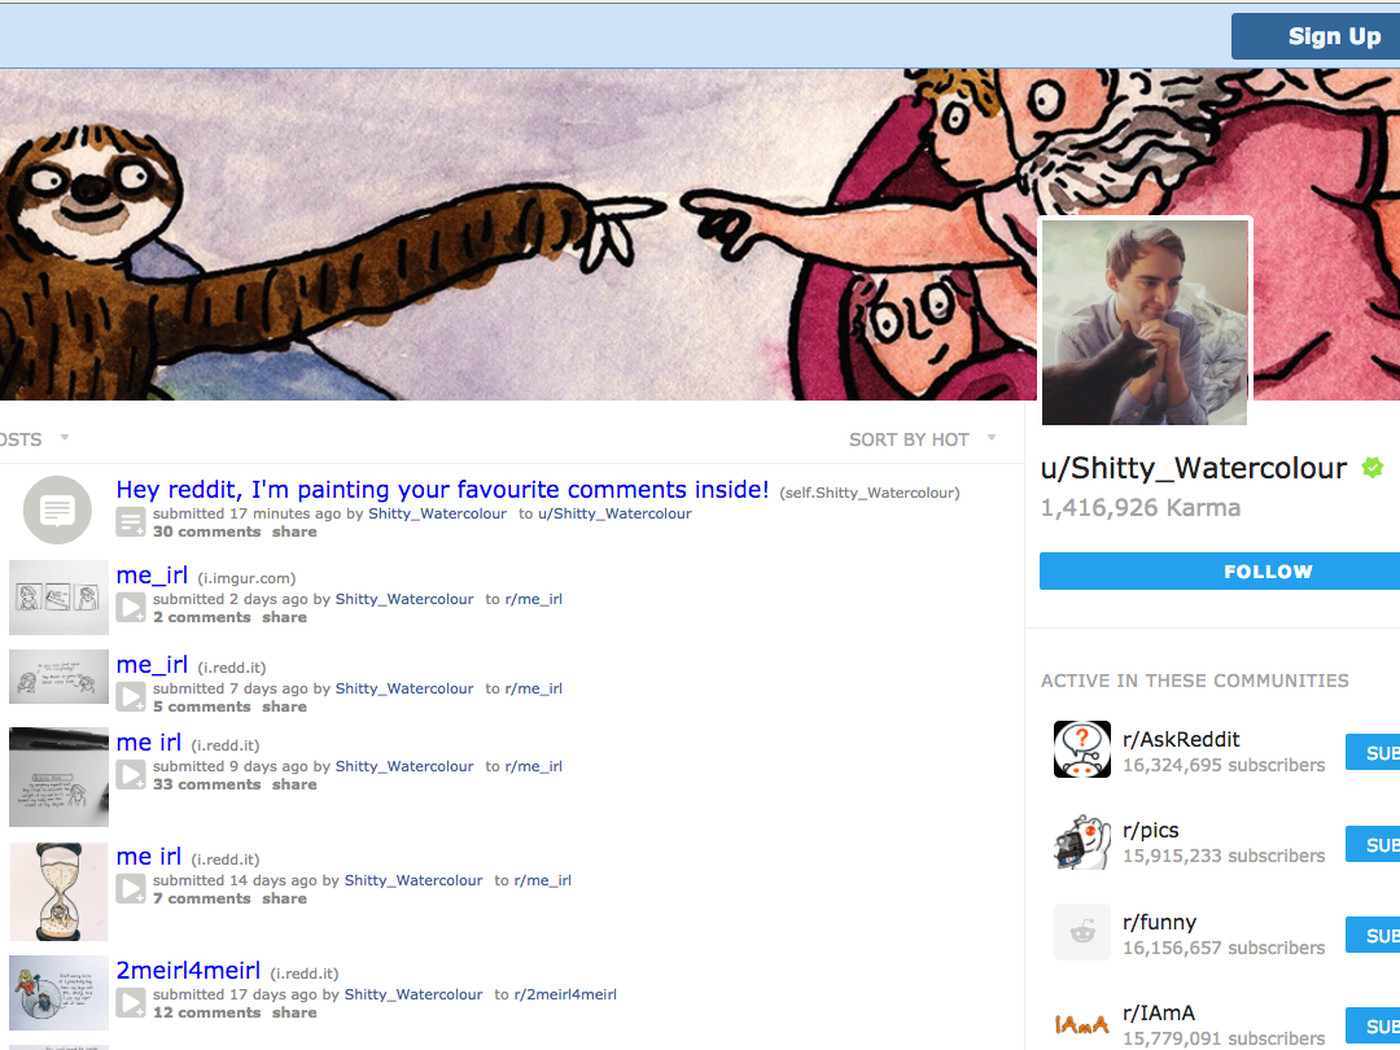 Reddit's new profile pages could fundamentally transform the site